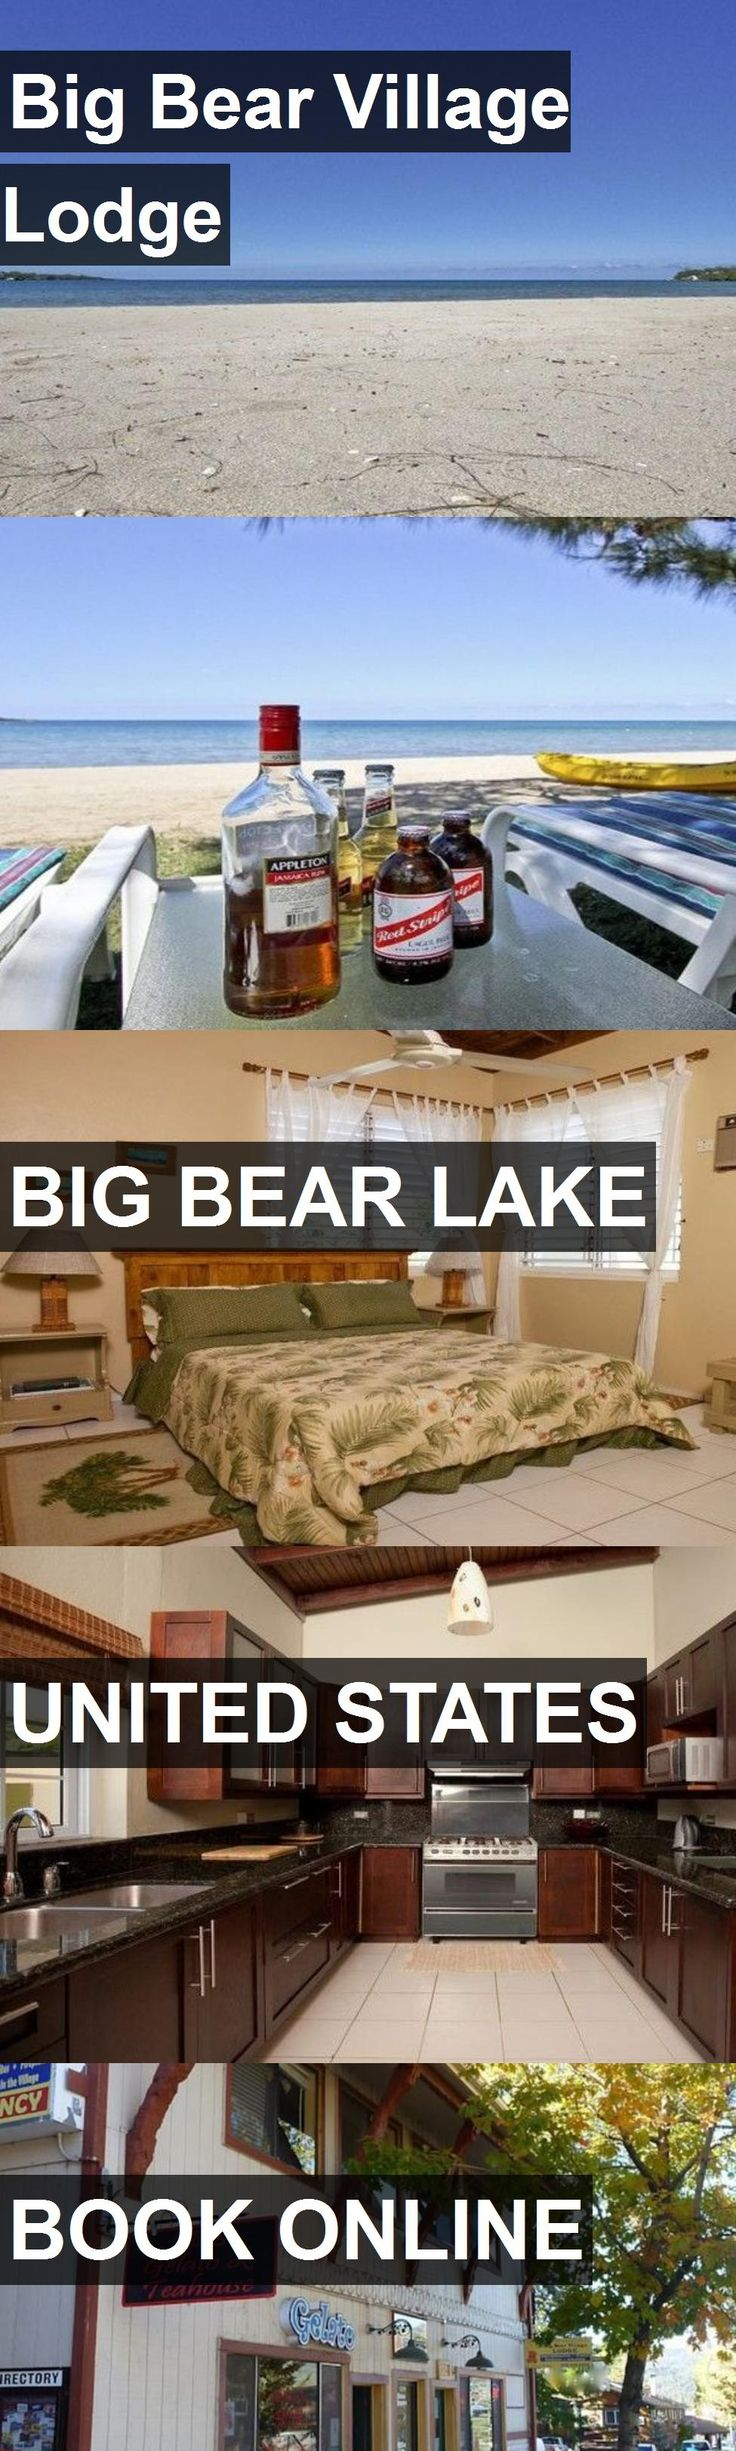 Hotel Big Bear Village Lodge in Big Bear Lake, United States. For more information, photos, reviews and best prices please follow the link. #UnitedStates #BigBearLake #hotel #travel #vacation